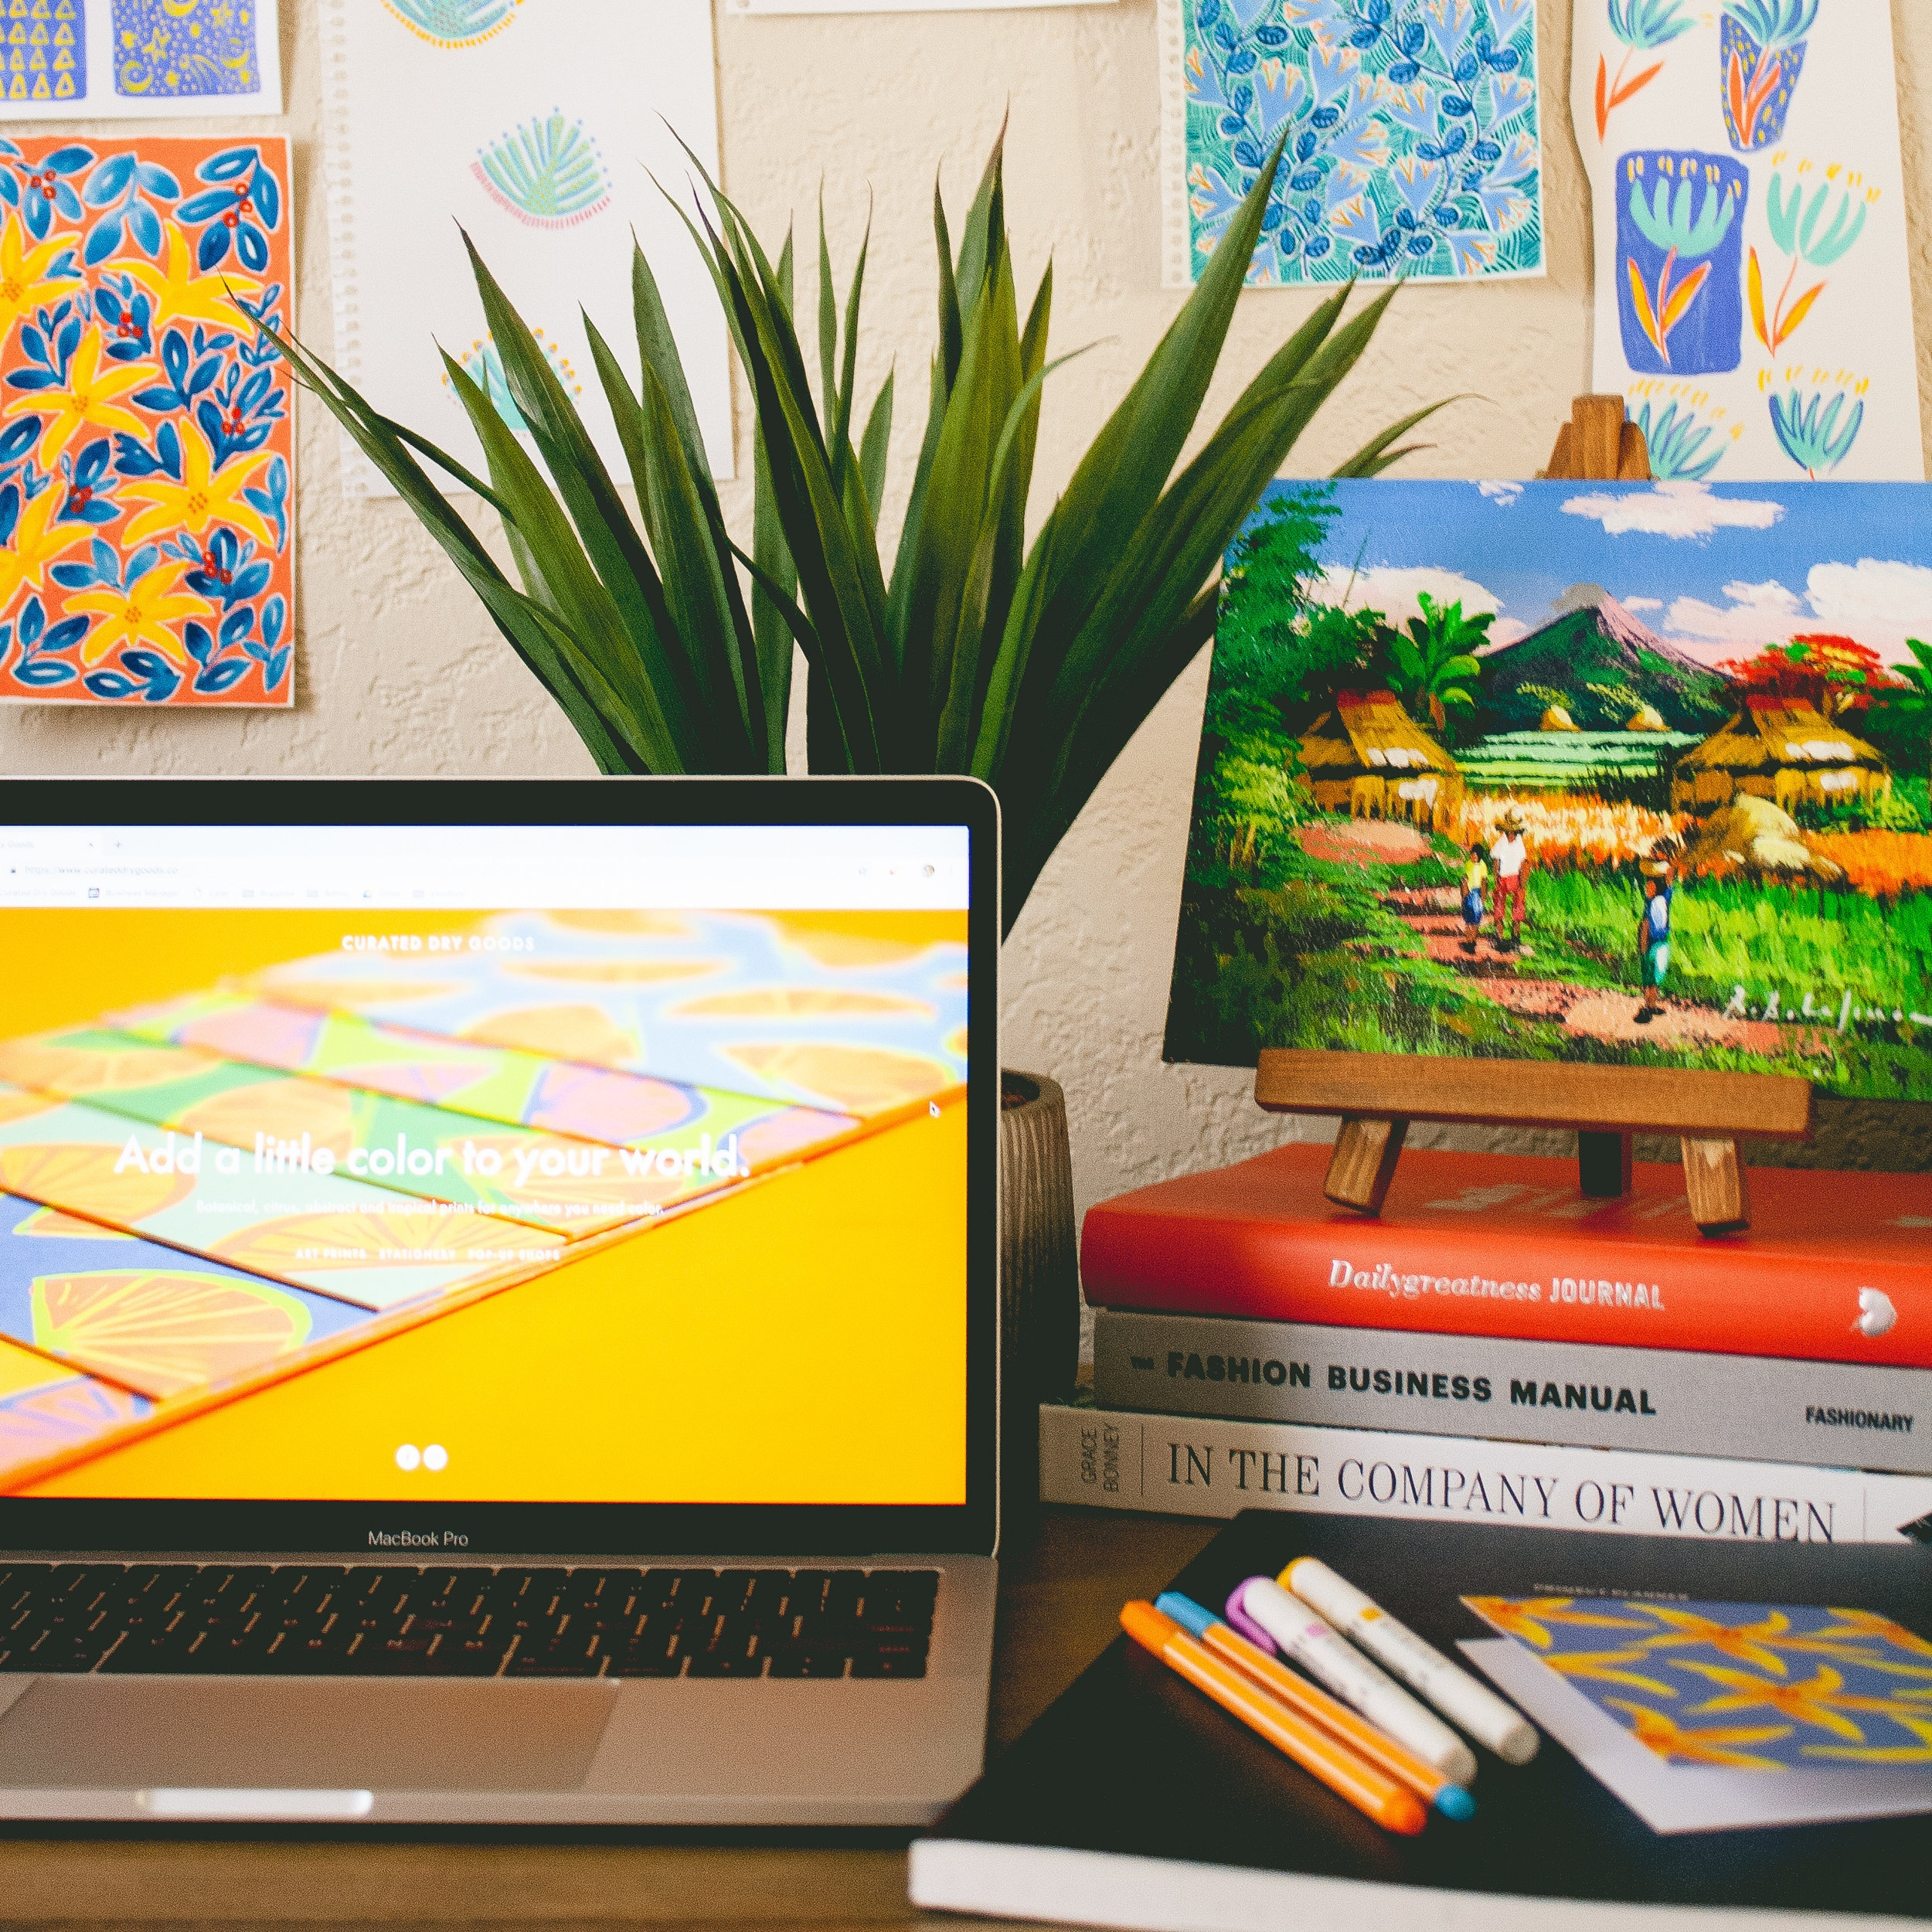 Marketing classes for artists, makers and creatives